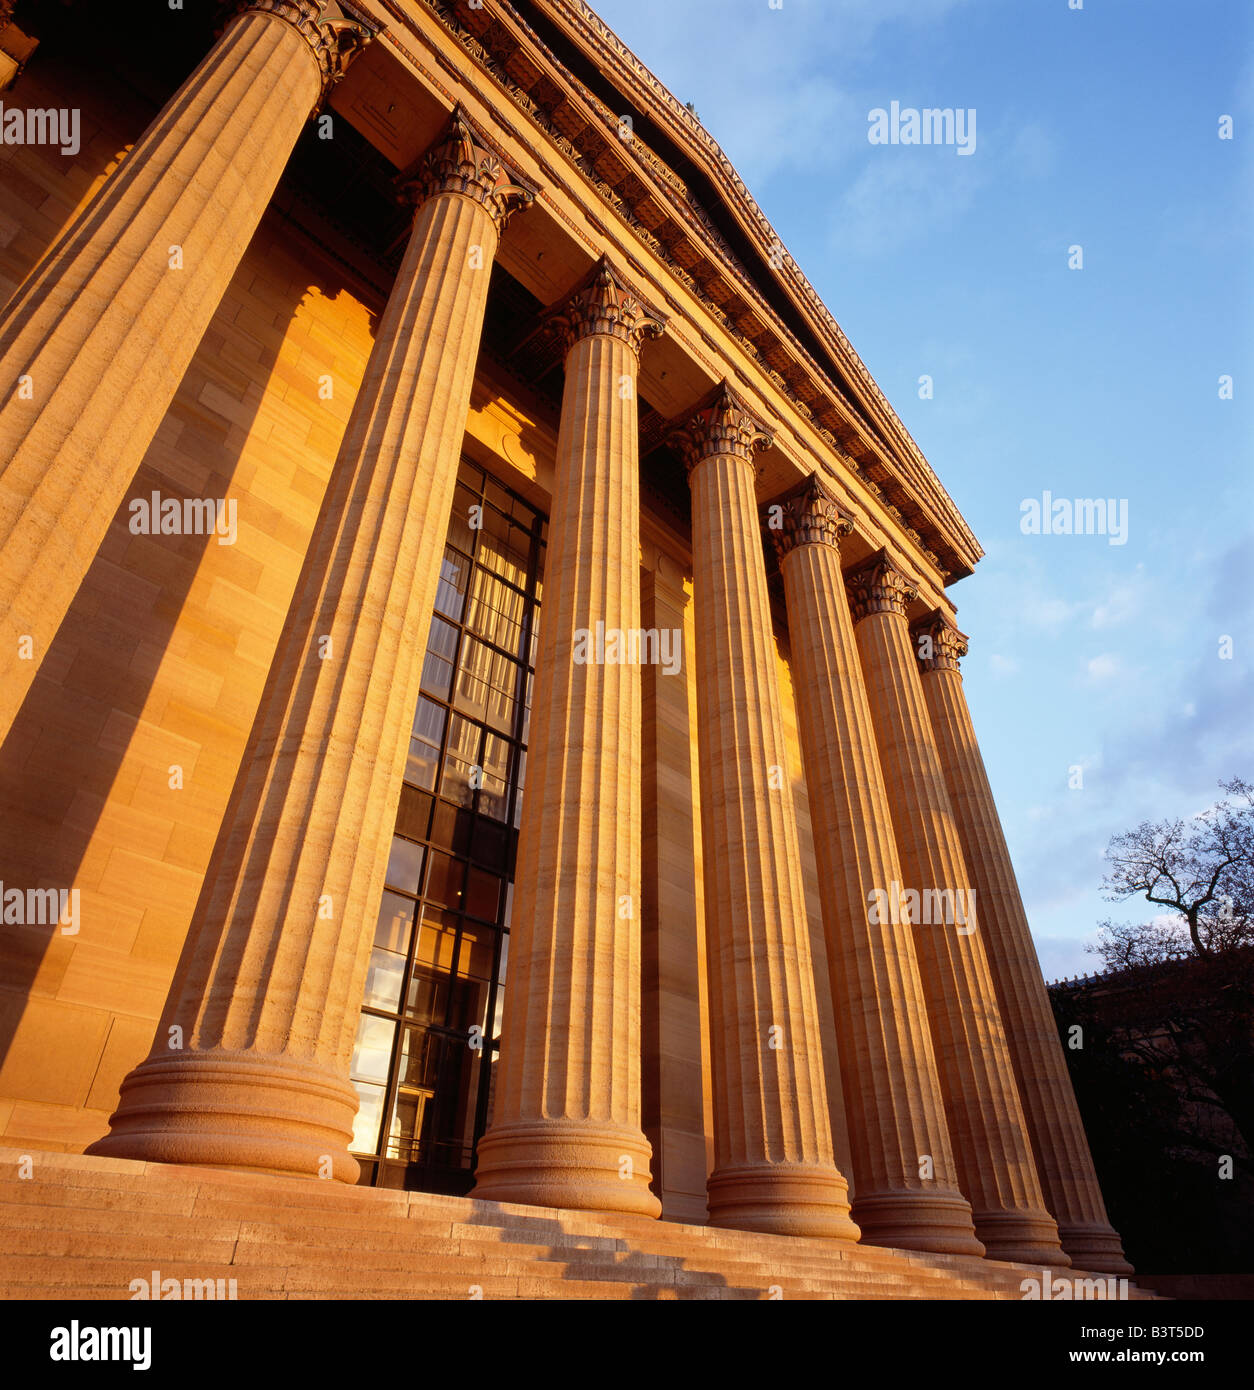 Philadelphia Museum Of Art  One Of The Largest Art Museums - Famous art museums in usa